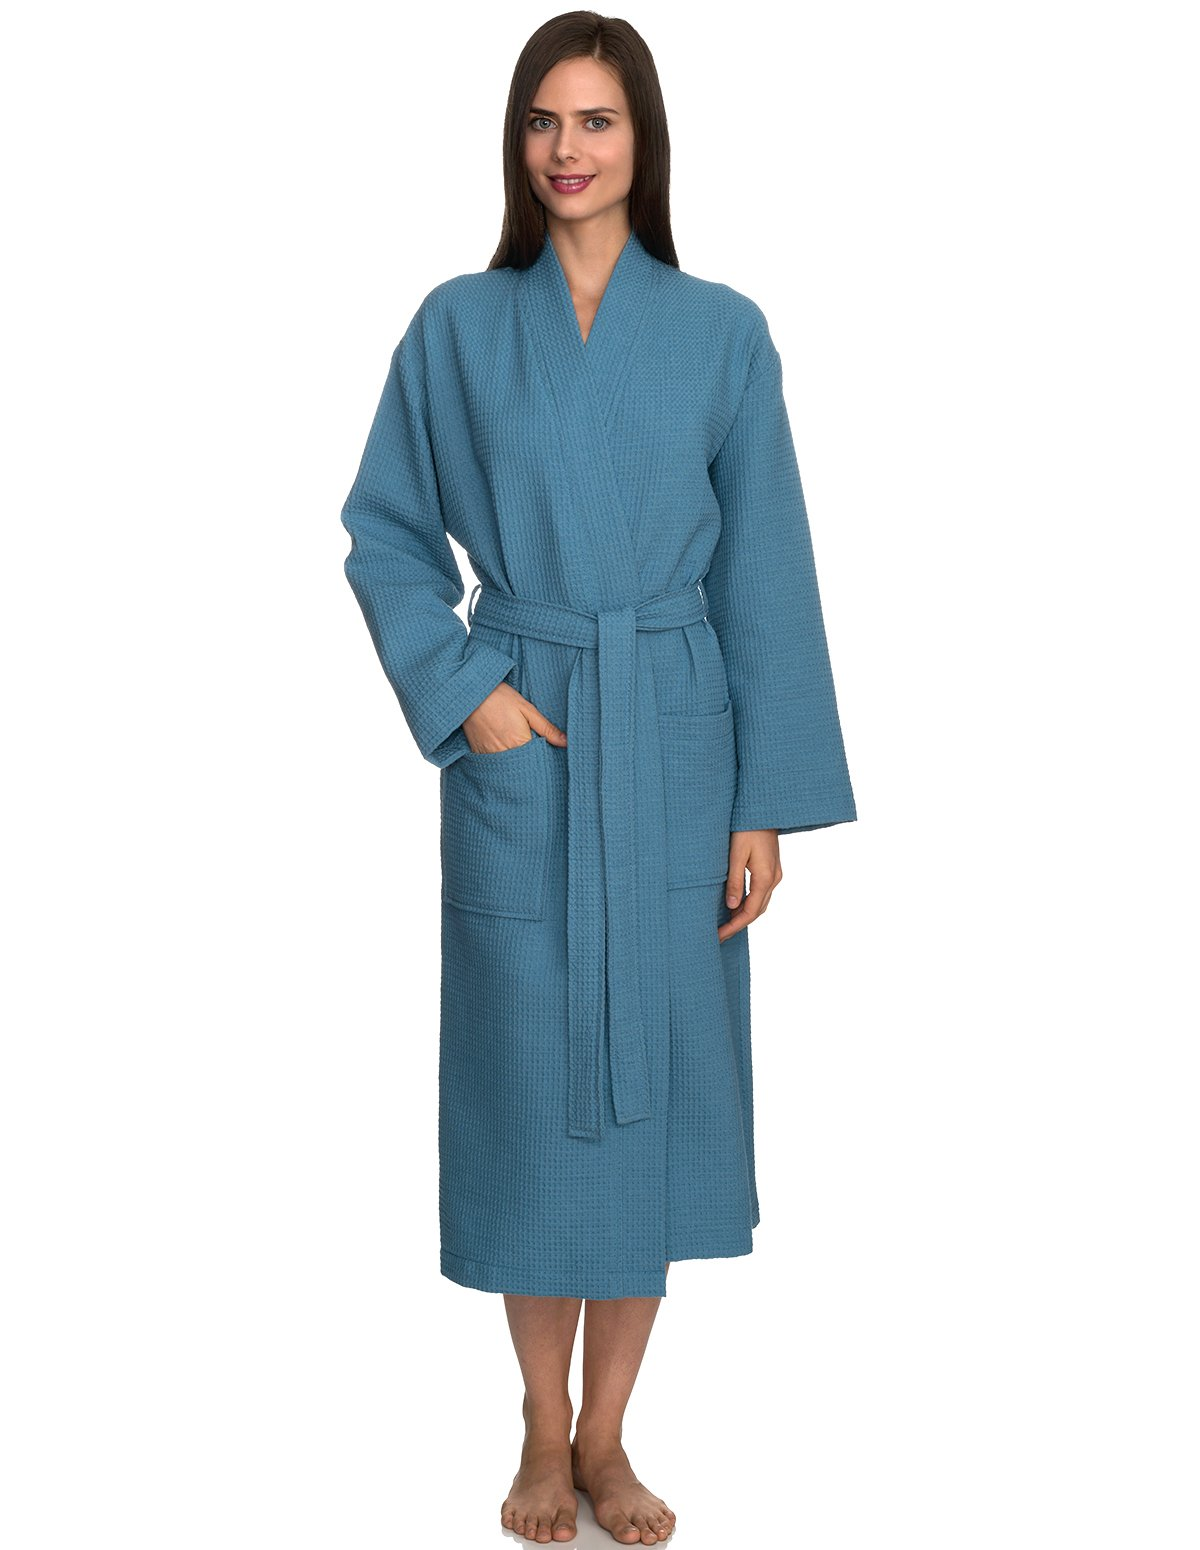 TowelSelections Women's Robe, Kimono Waffle Spa Bathrobe Small/Medium Niagara Blue